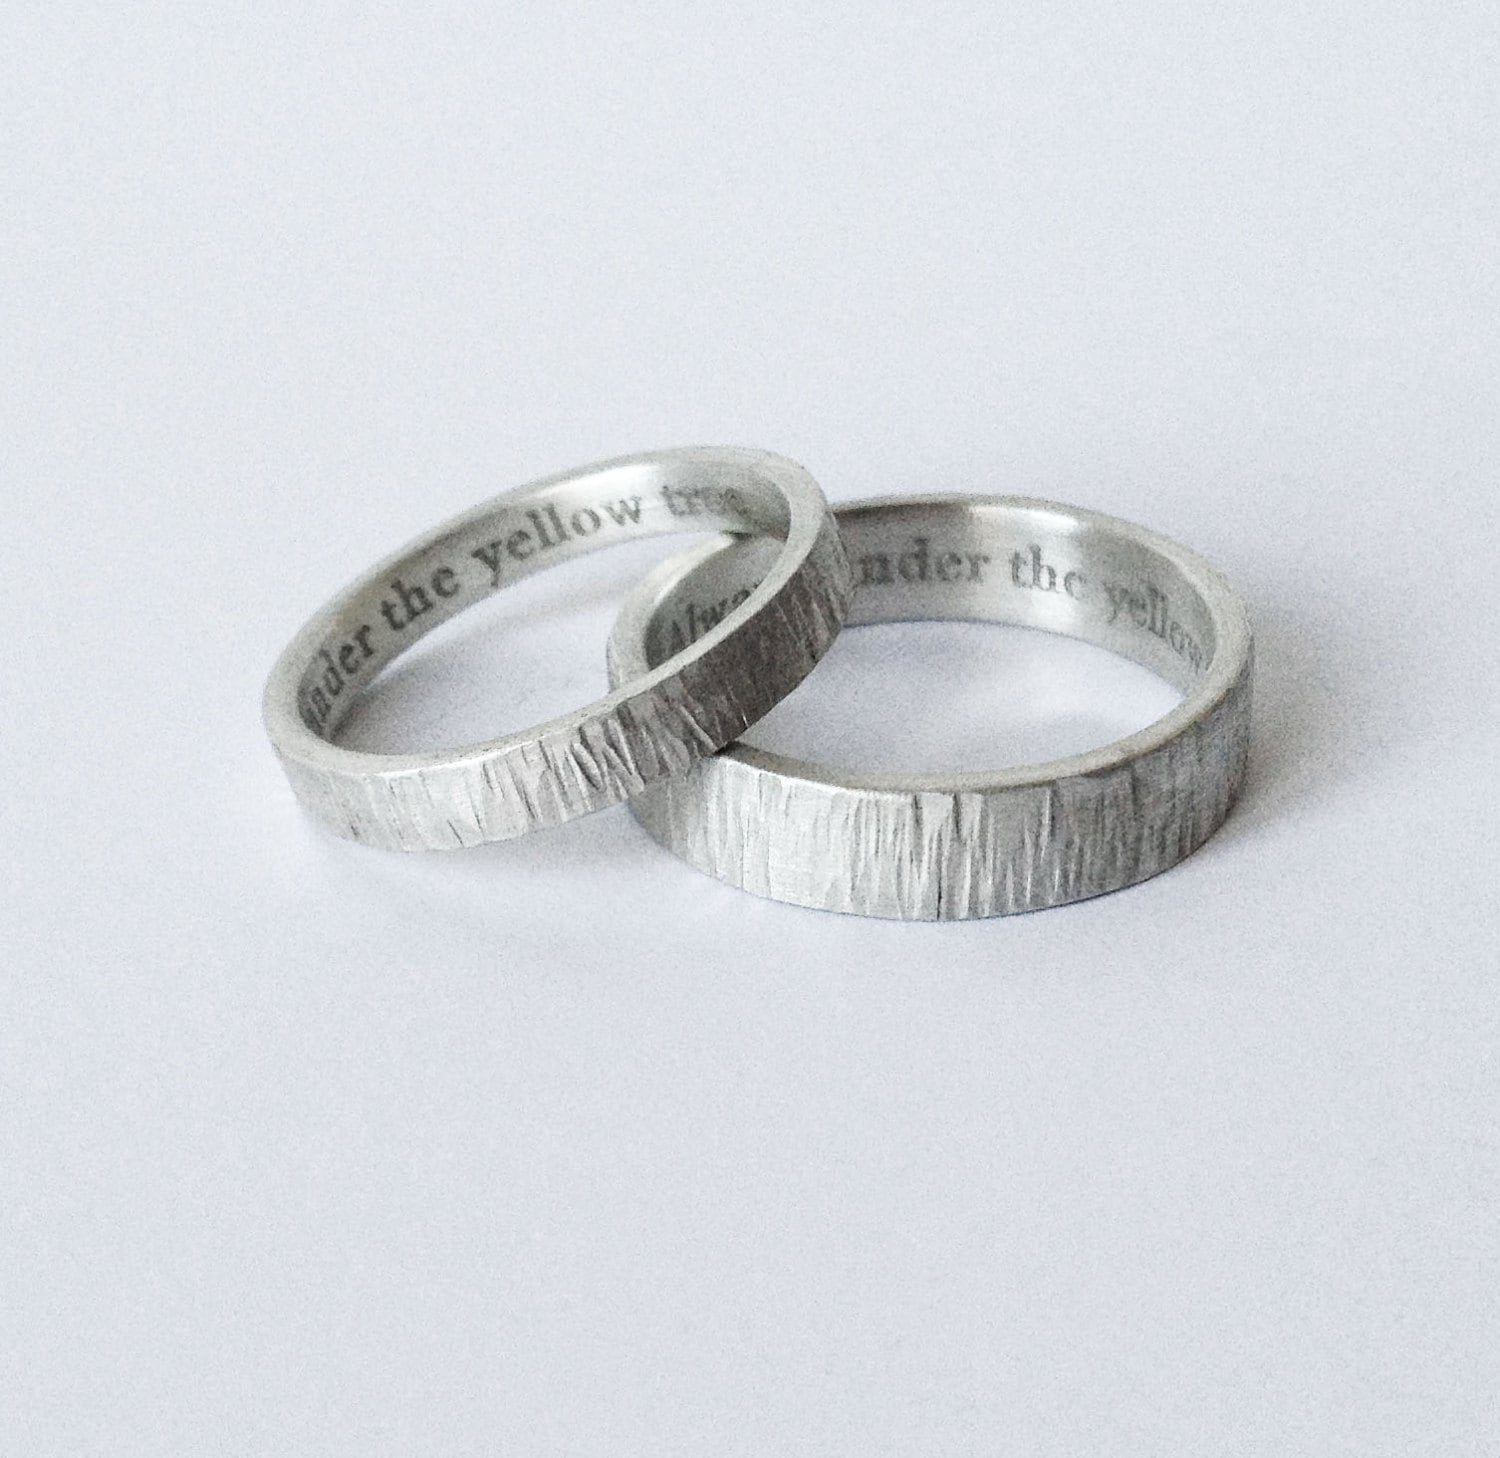 Simplistic Bands: Simple Engraved Wedding Rings Engraved Bands Wedding Ring